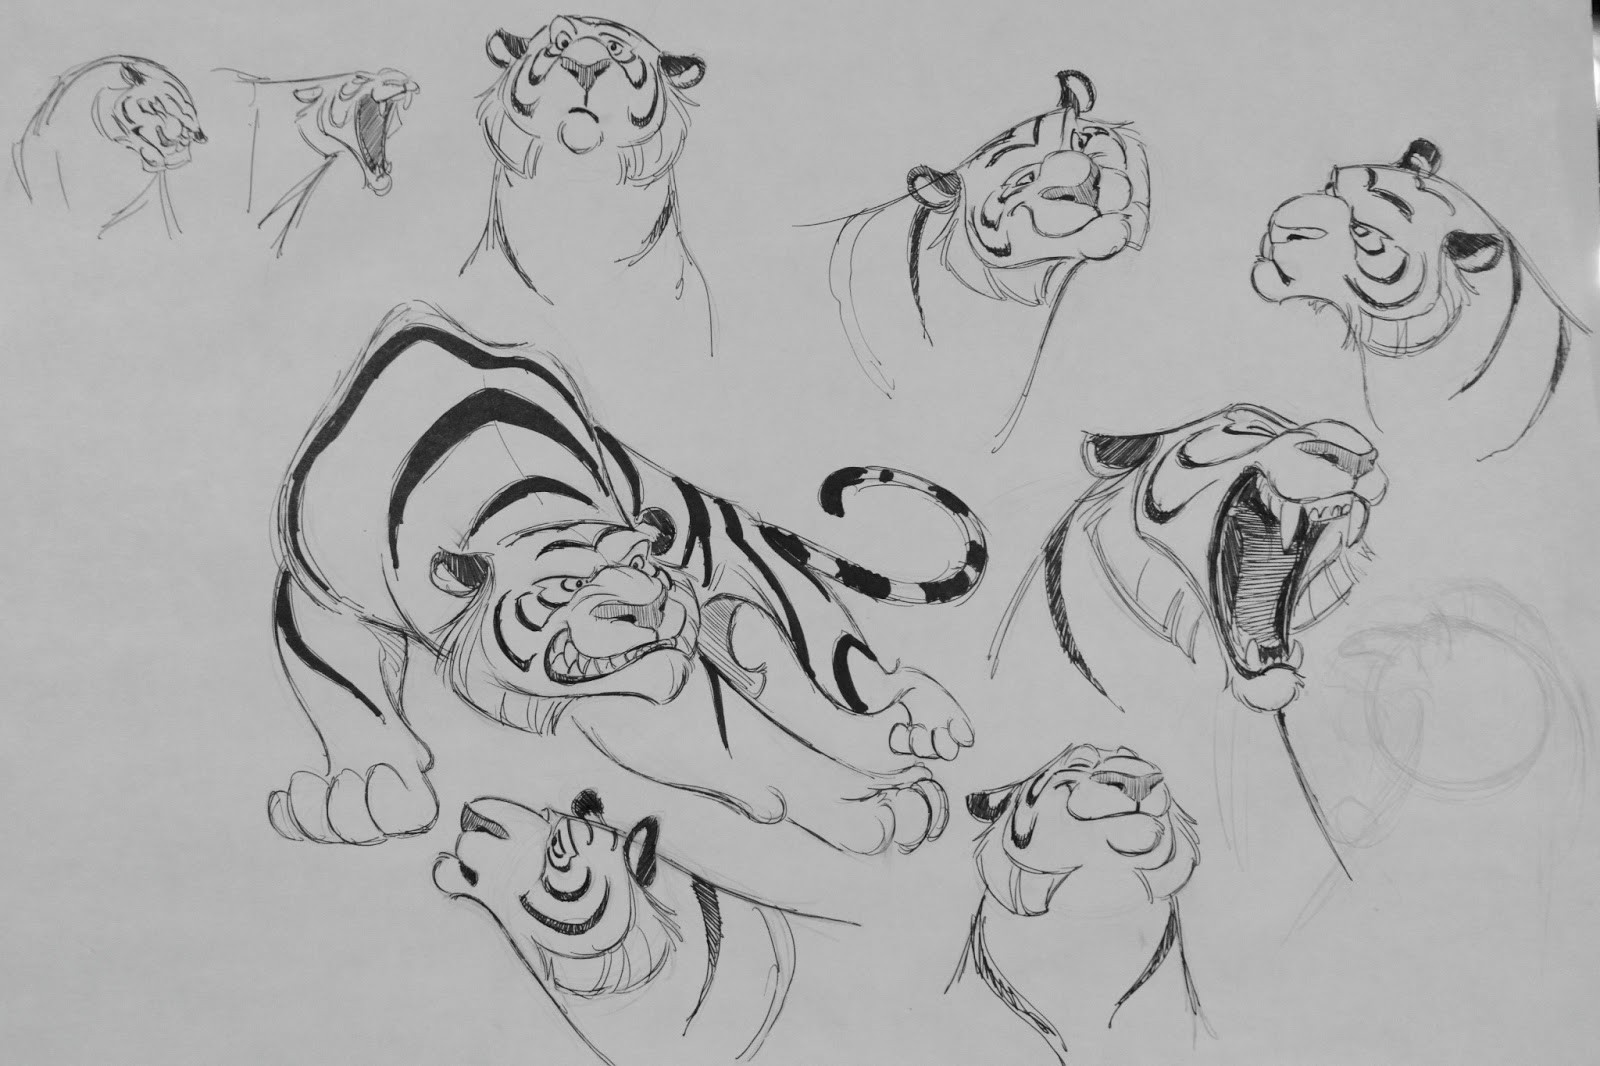 Early concepts for the character rajah from disney animation aladdin by concept artist aaron blaise